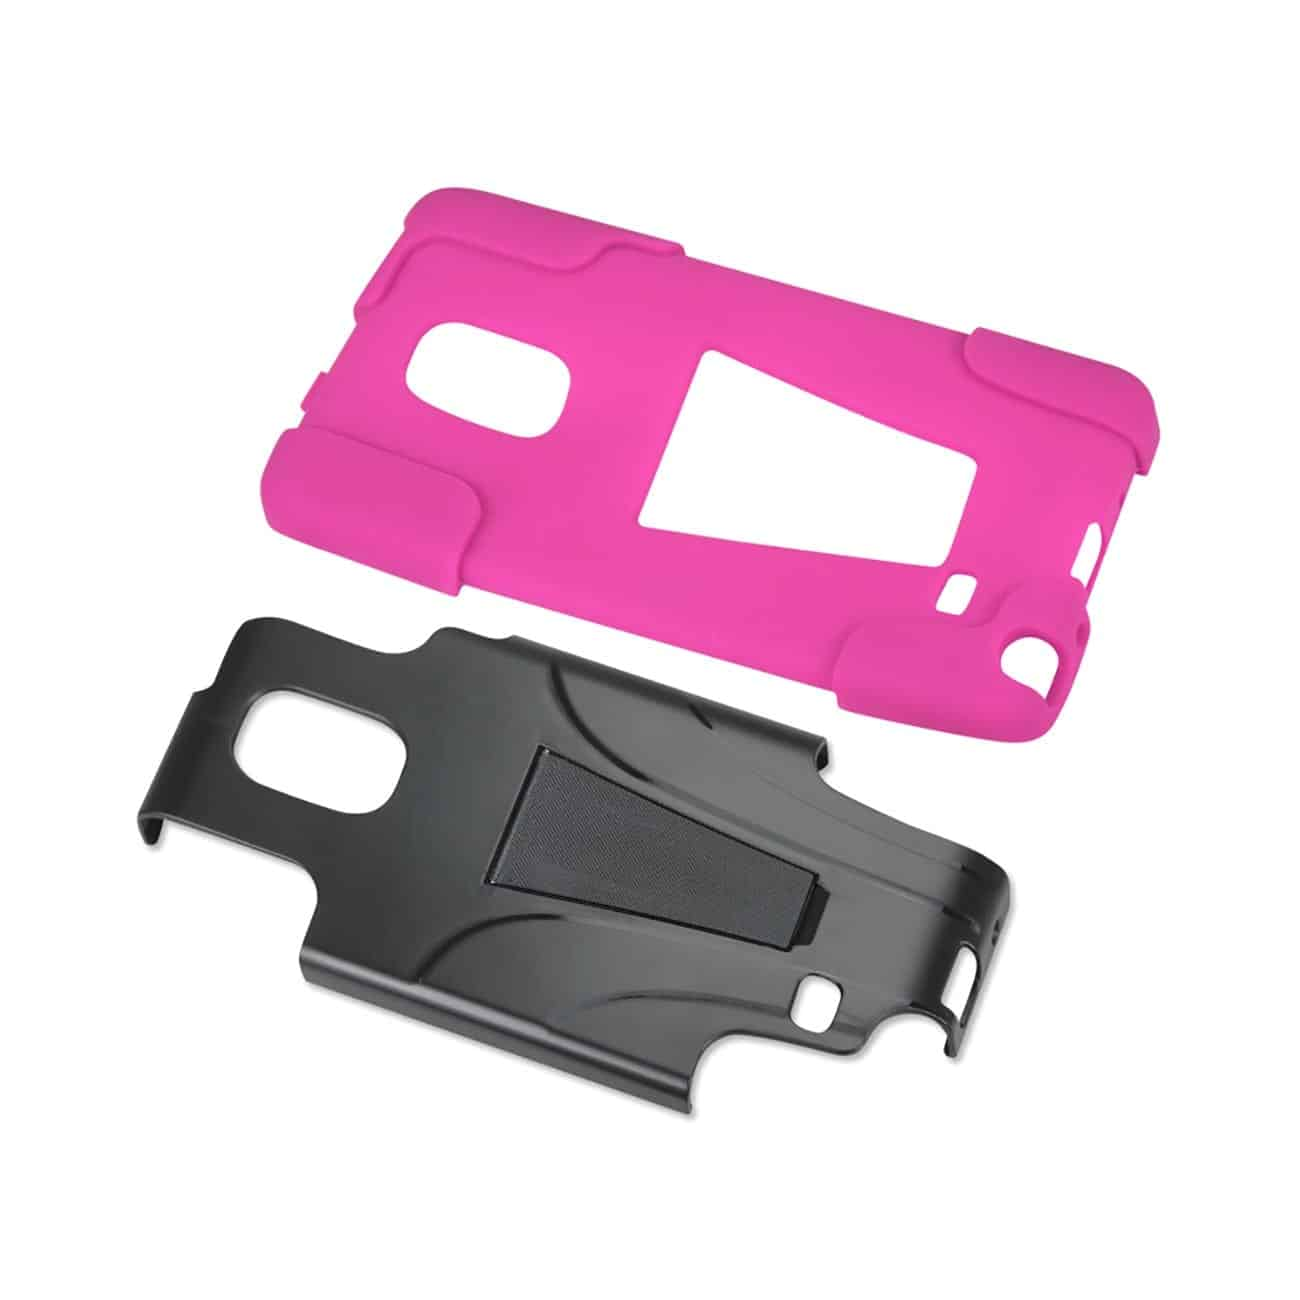 SAMSUNG GALAXY NOTE EDGE HYBRID HEAVY DUTY CASE WITH KICKSTAND IN HOT PINK BLACK